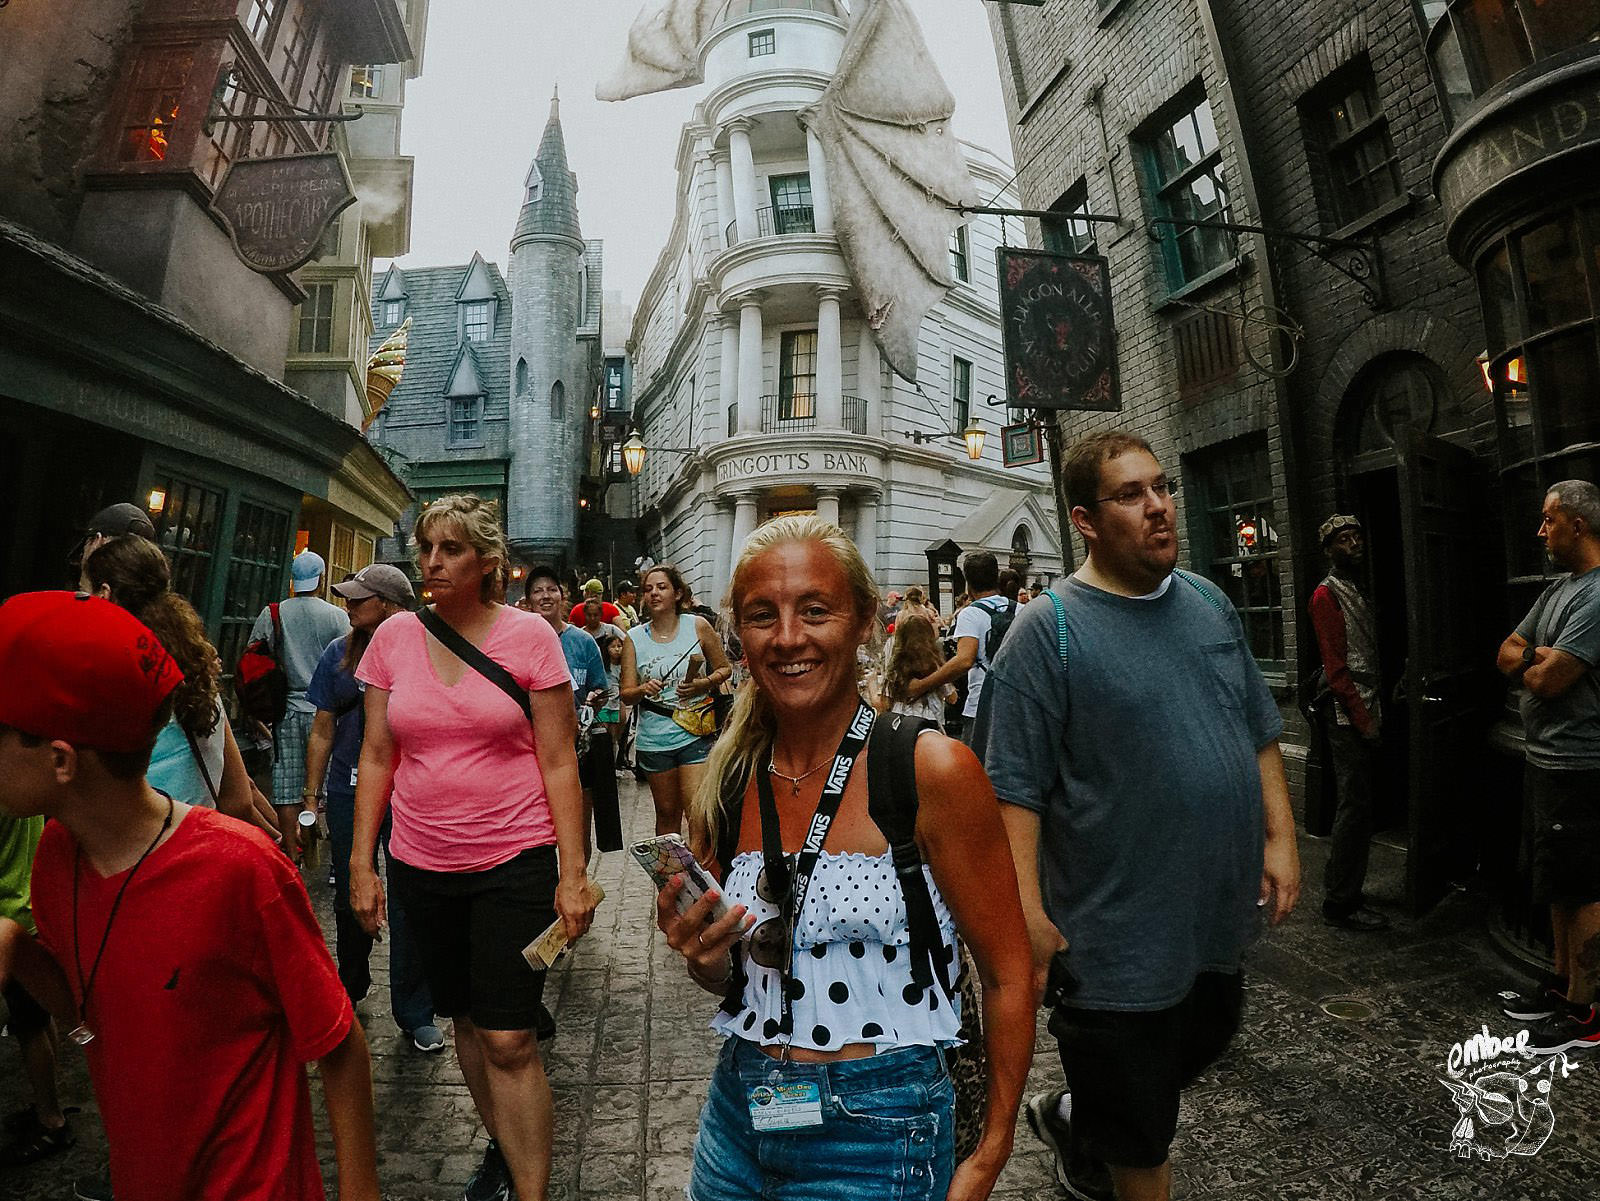 girl infront of gringots bank